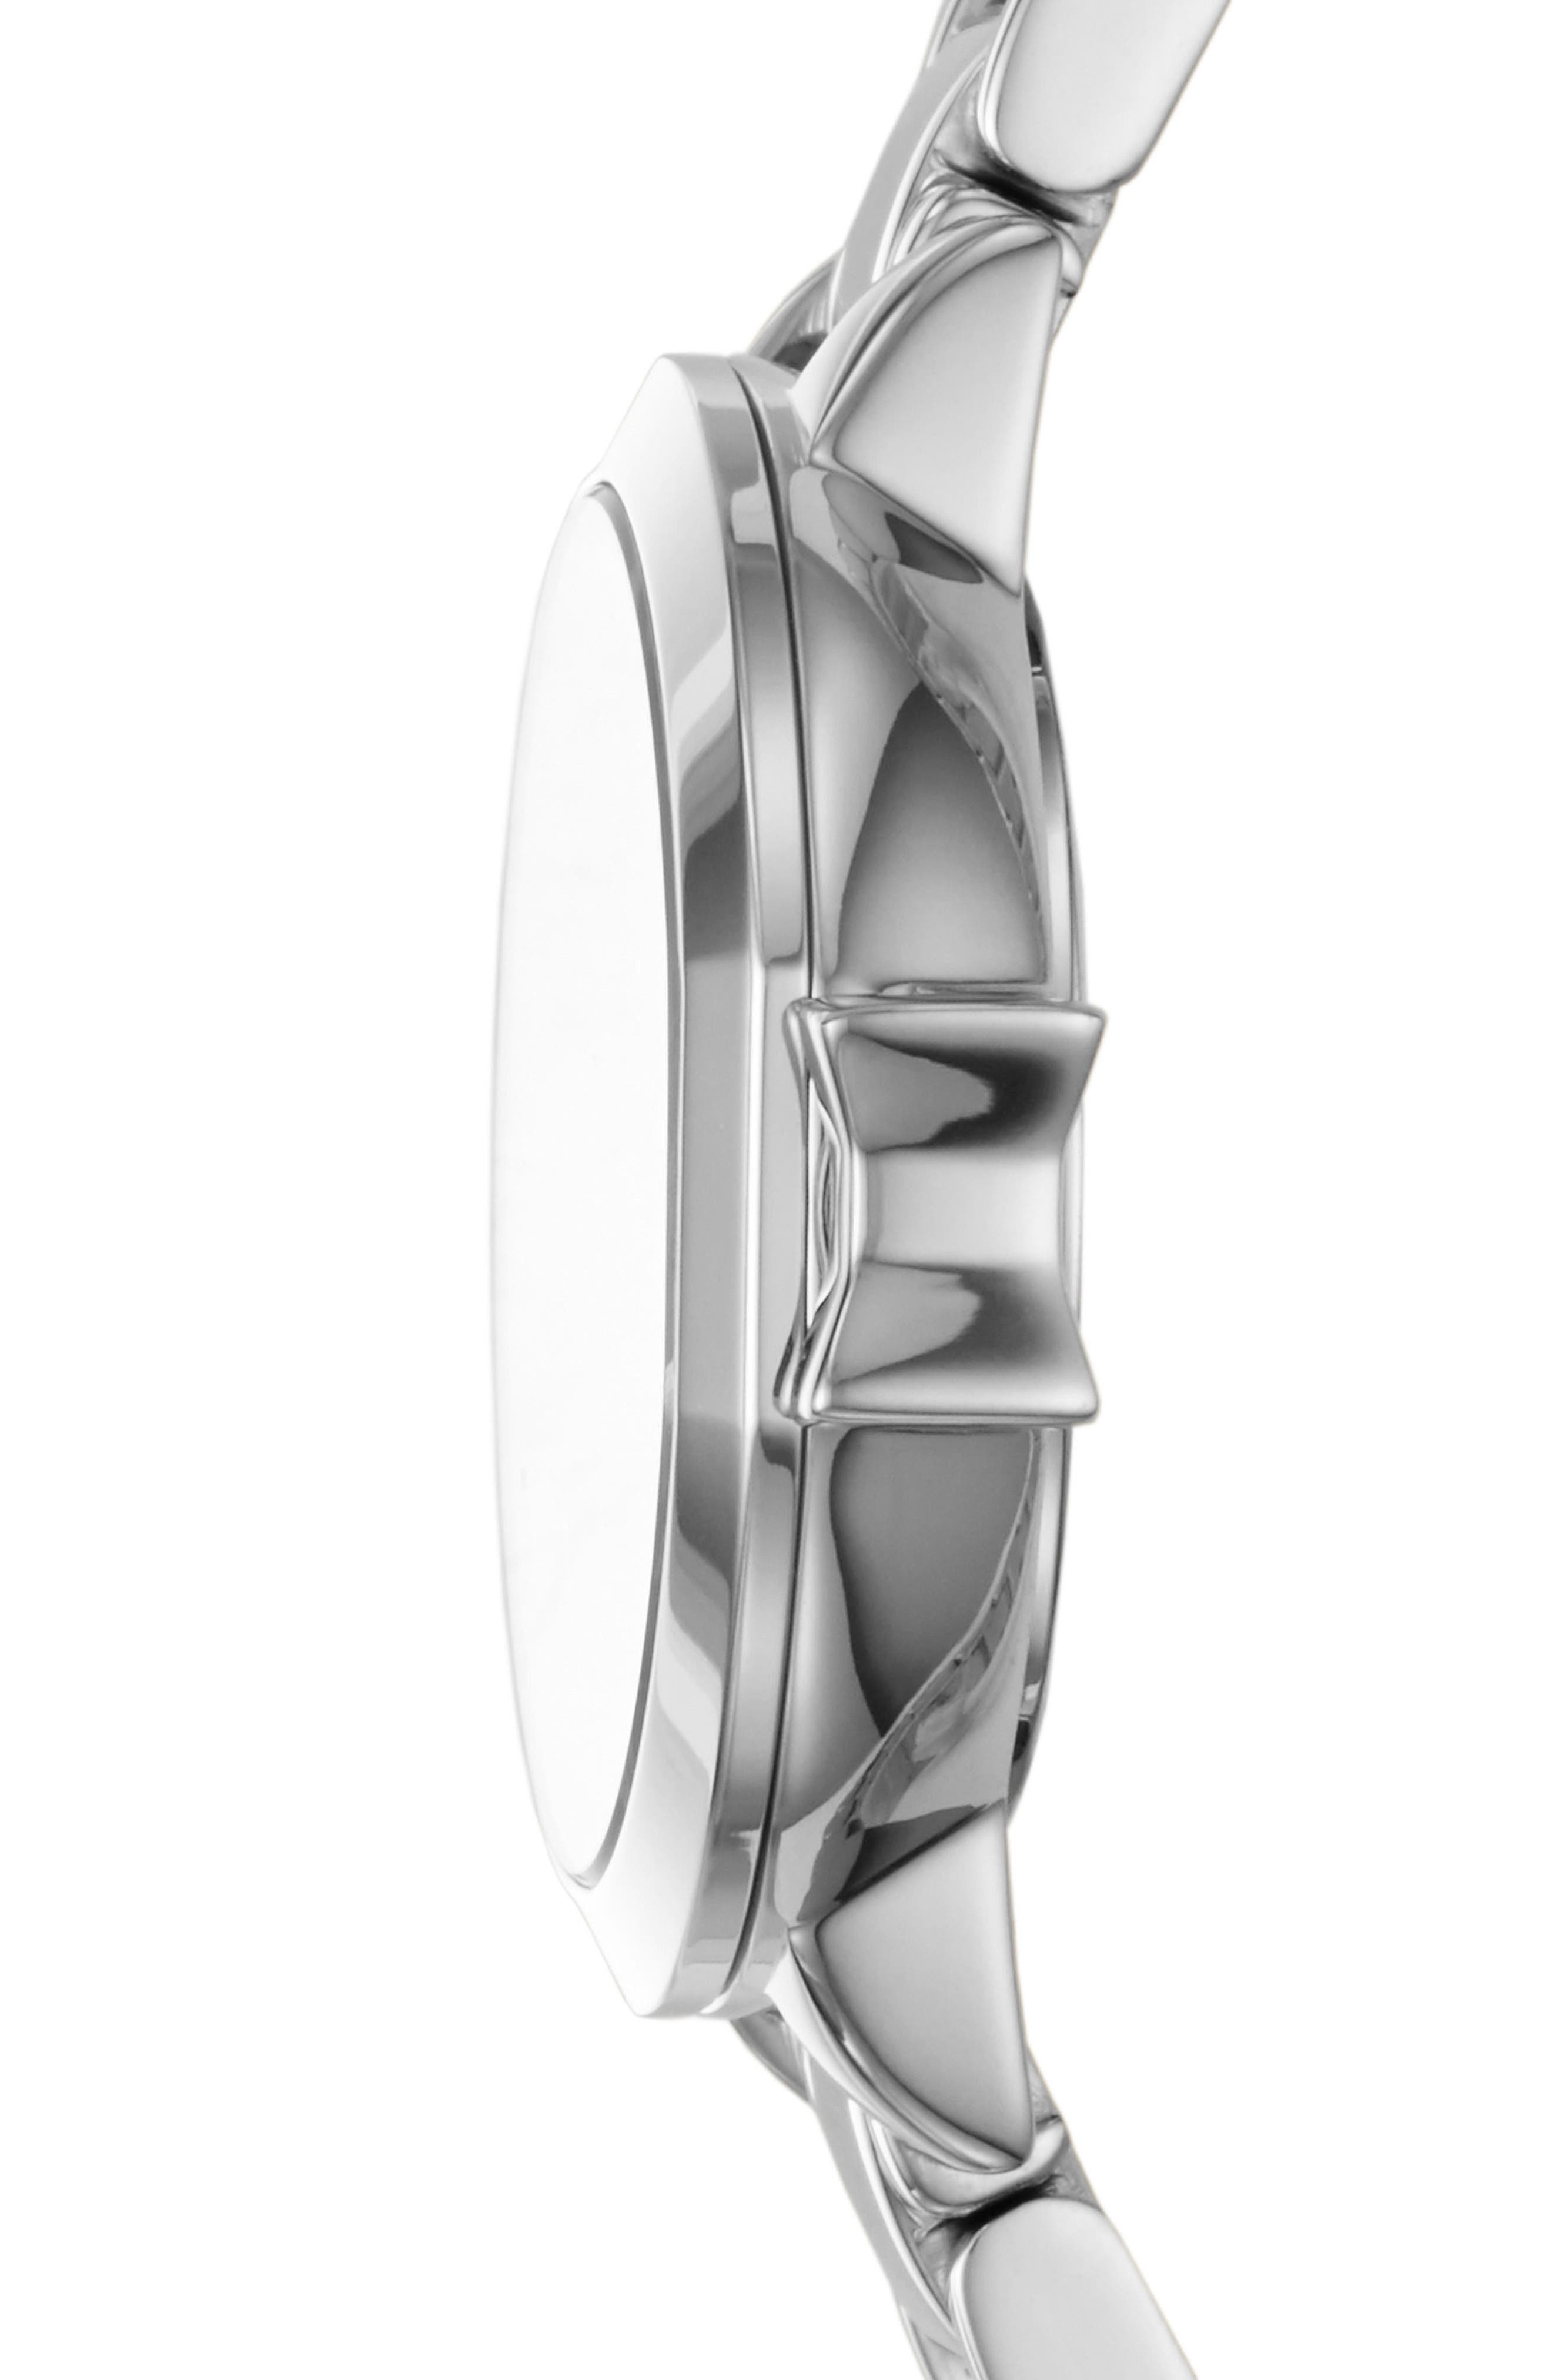 park row bracelet watch, 24mm,                             Alternate thumbnail 2, color,                             Silver/ Mop/ Silver